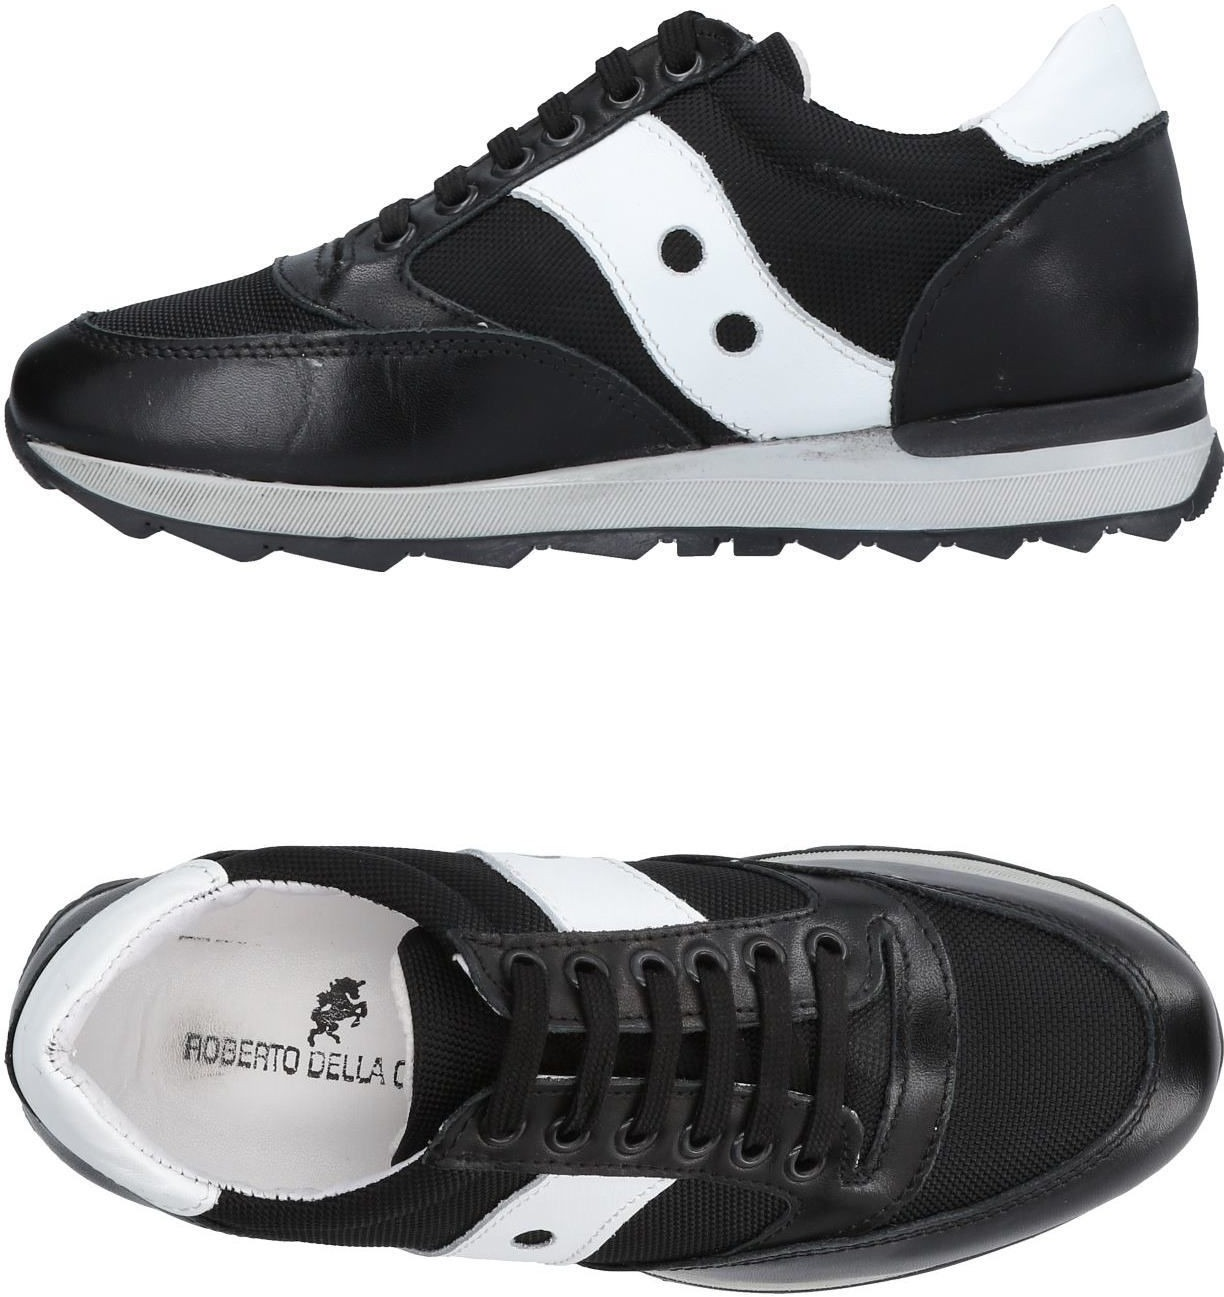 amp; Shoes Tennis Roberto Calzature Basse Croce Della Sneakers wnqqIT6OY